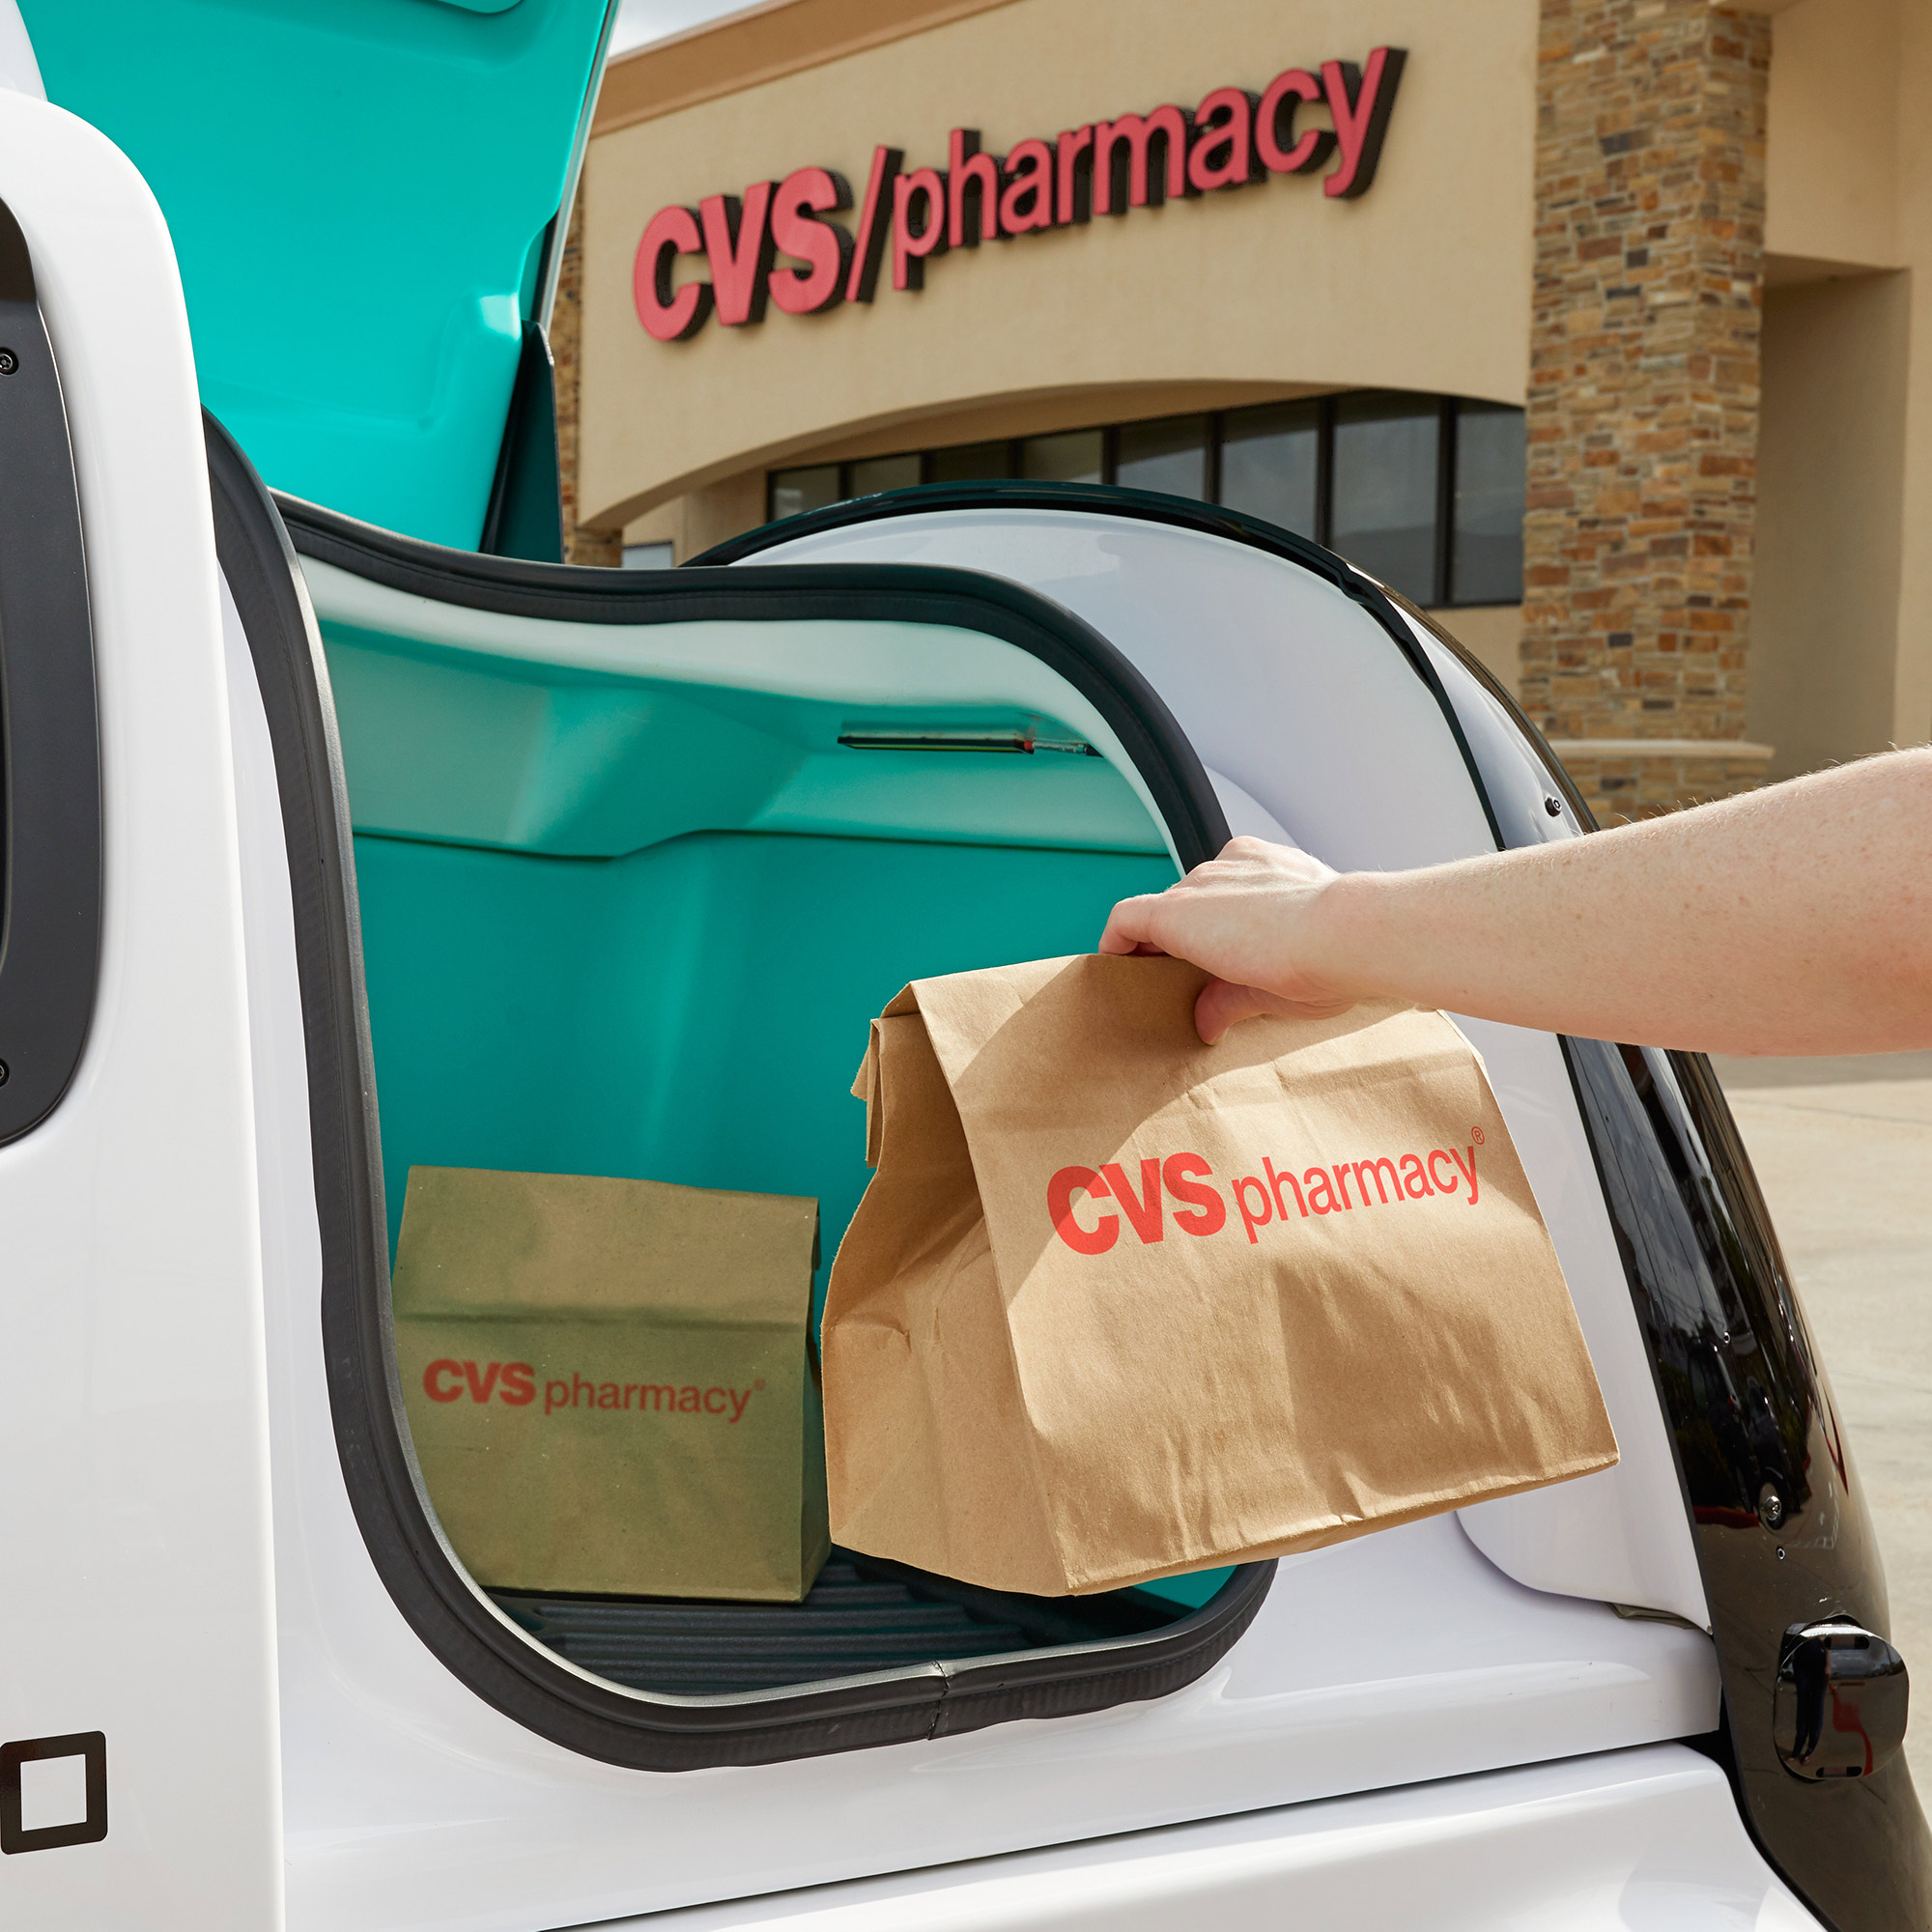 A CVS Pharmacy customer collects a delivery from a Nuro autonomous vehicle outside of a CVS Pharmacy location in Texas.